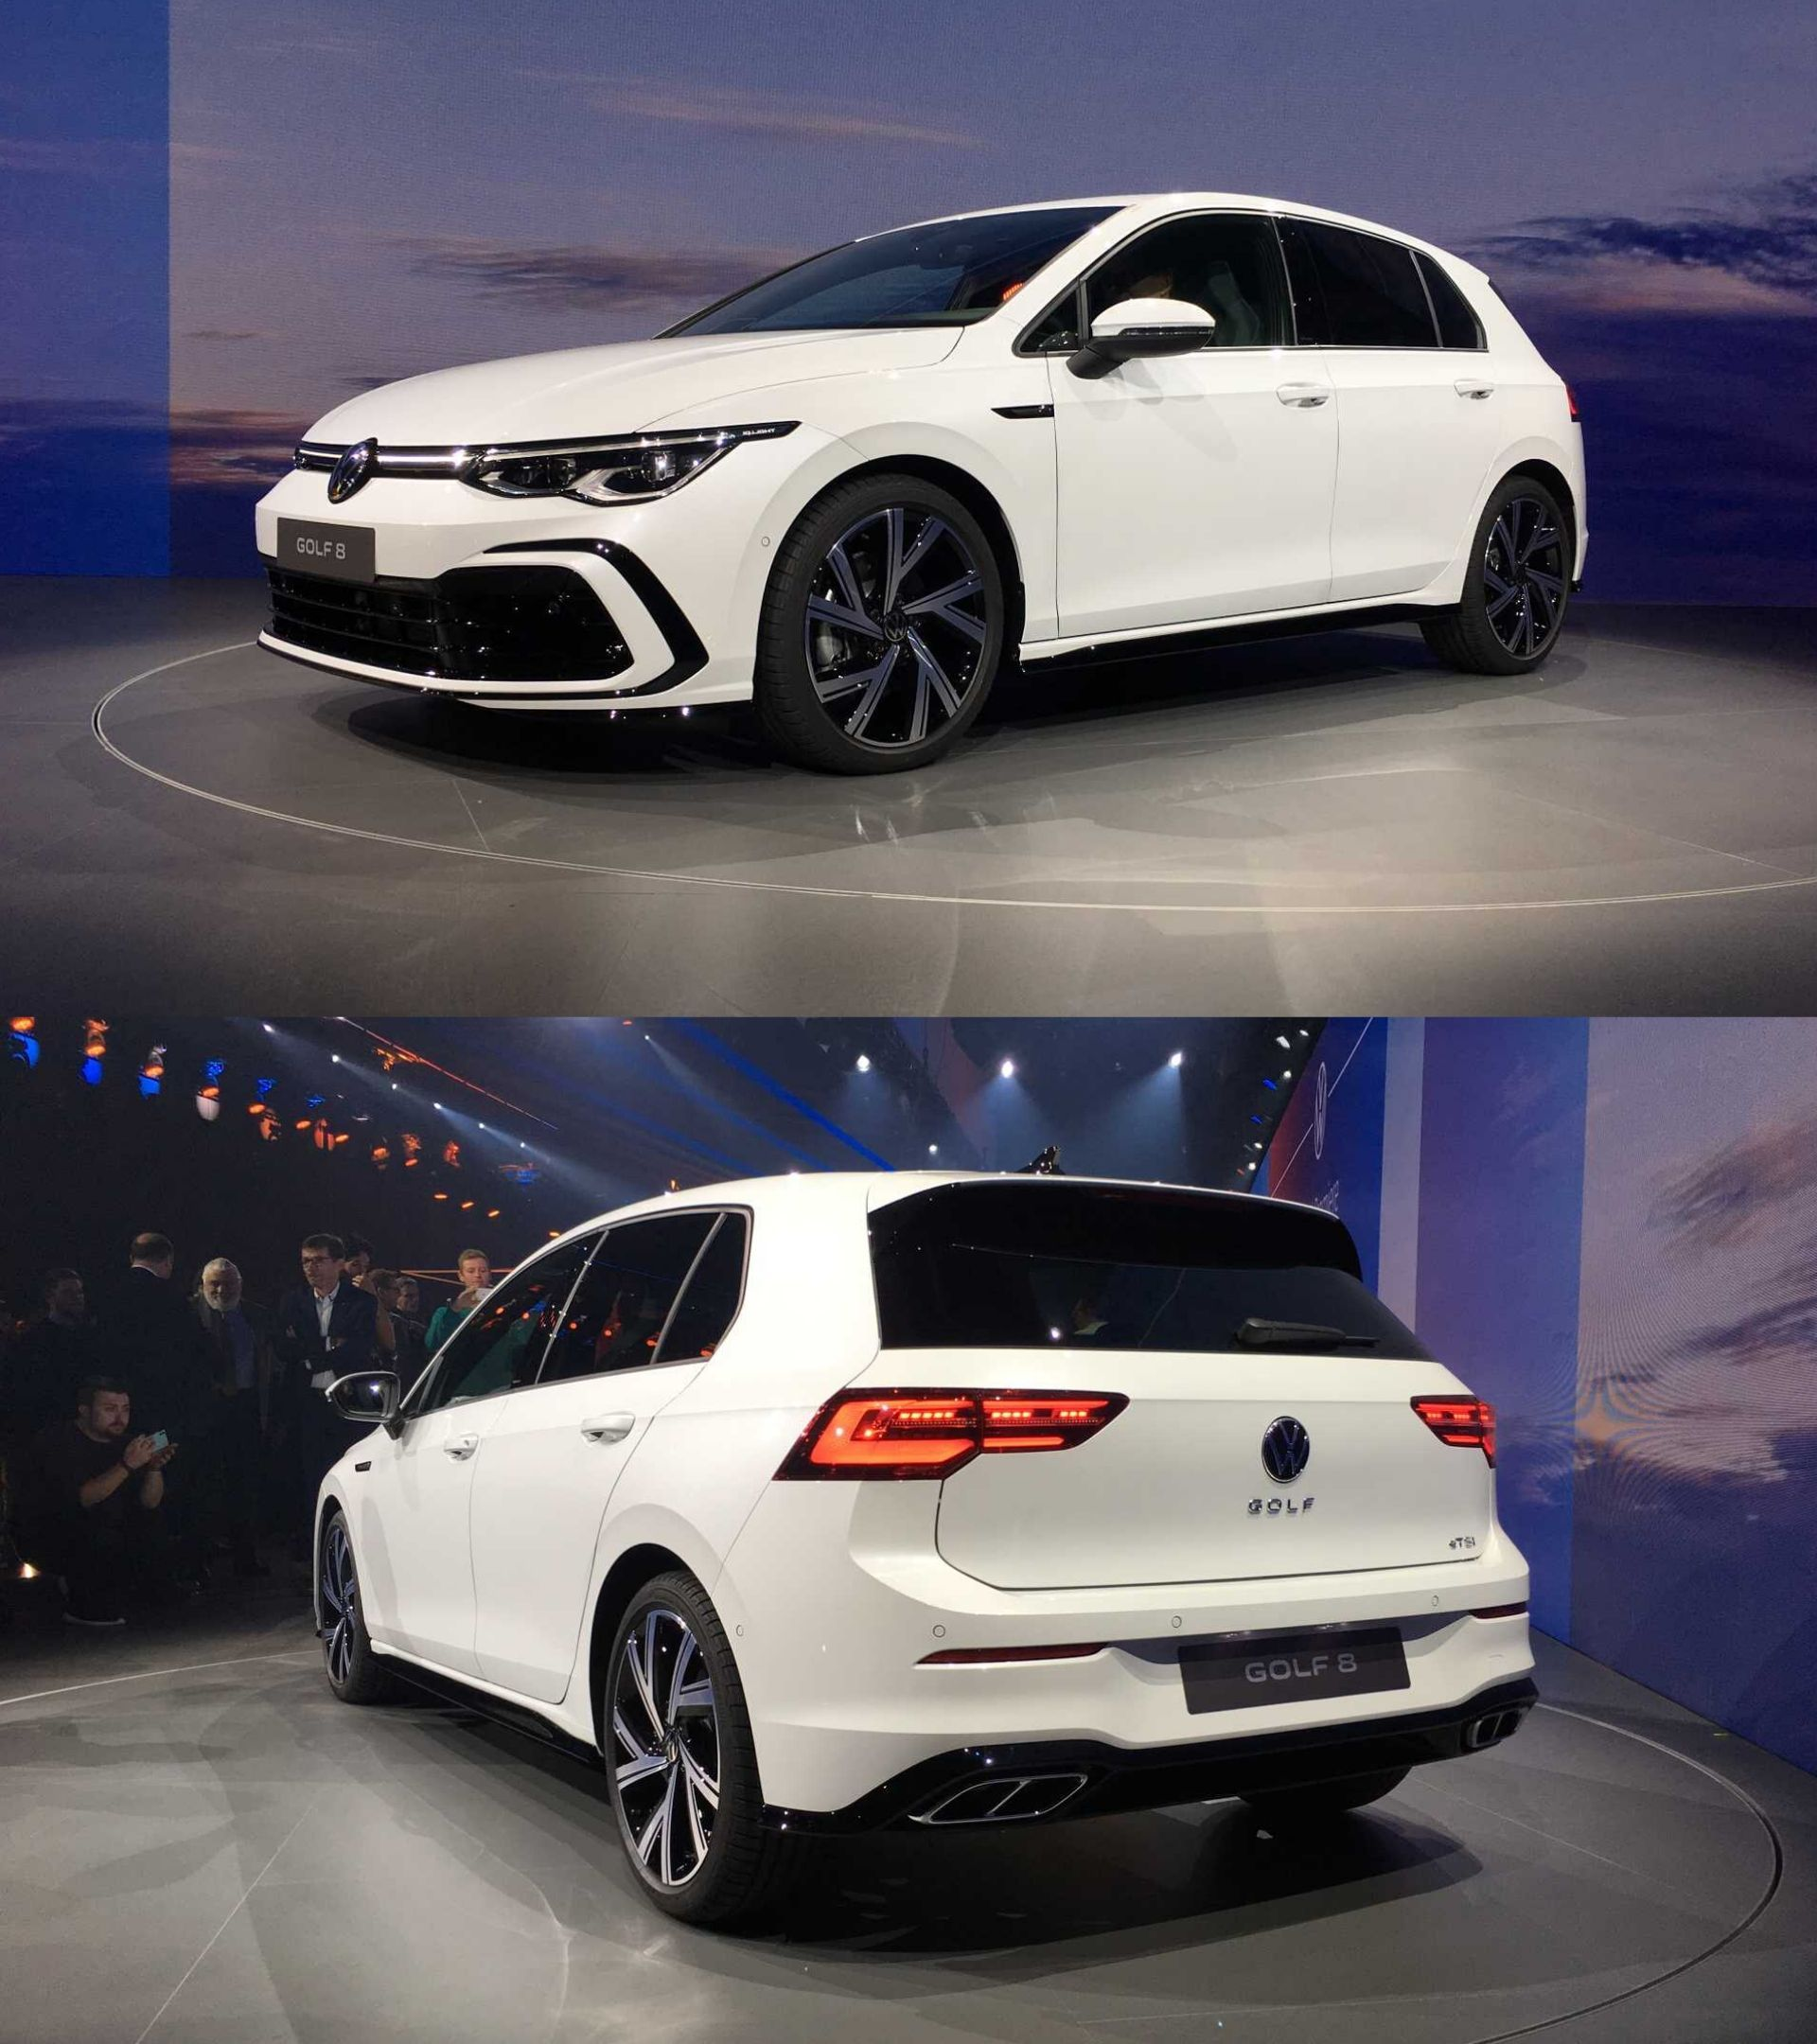 Vw Golf 8 Gti 2020 Delayed Engine Performance Price First Information About The New Gti Vw Golf Gti One Pic